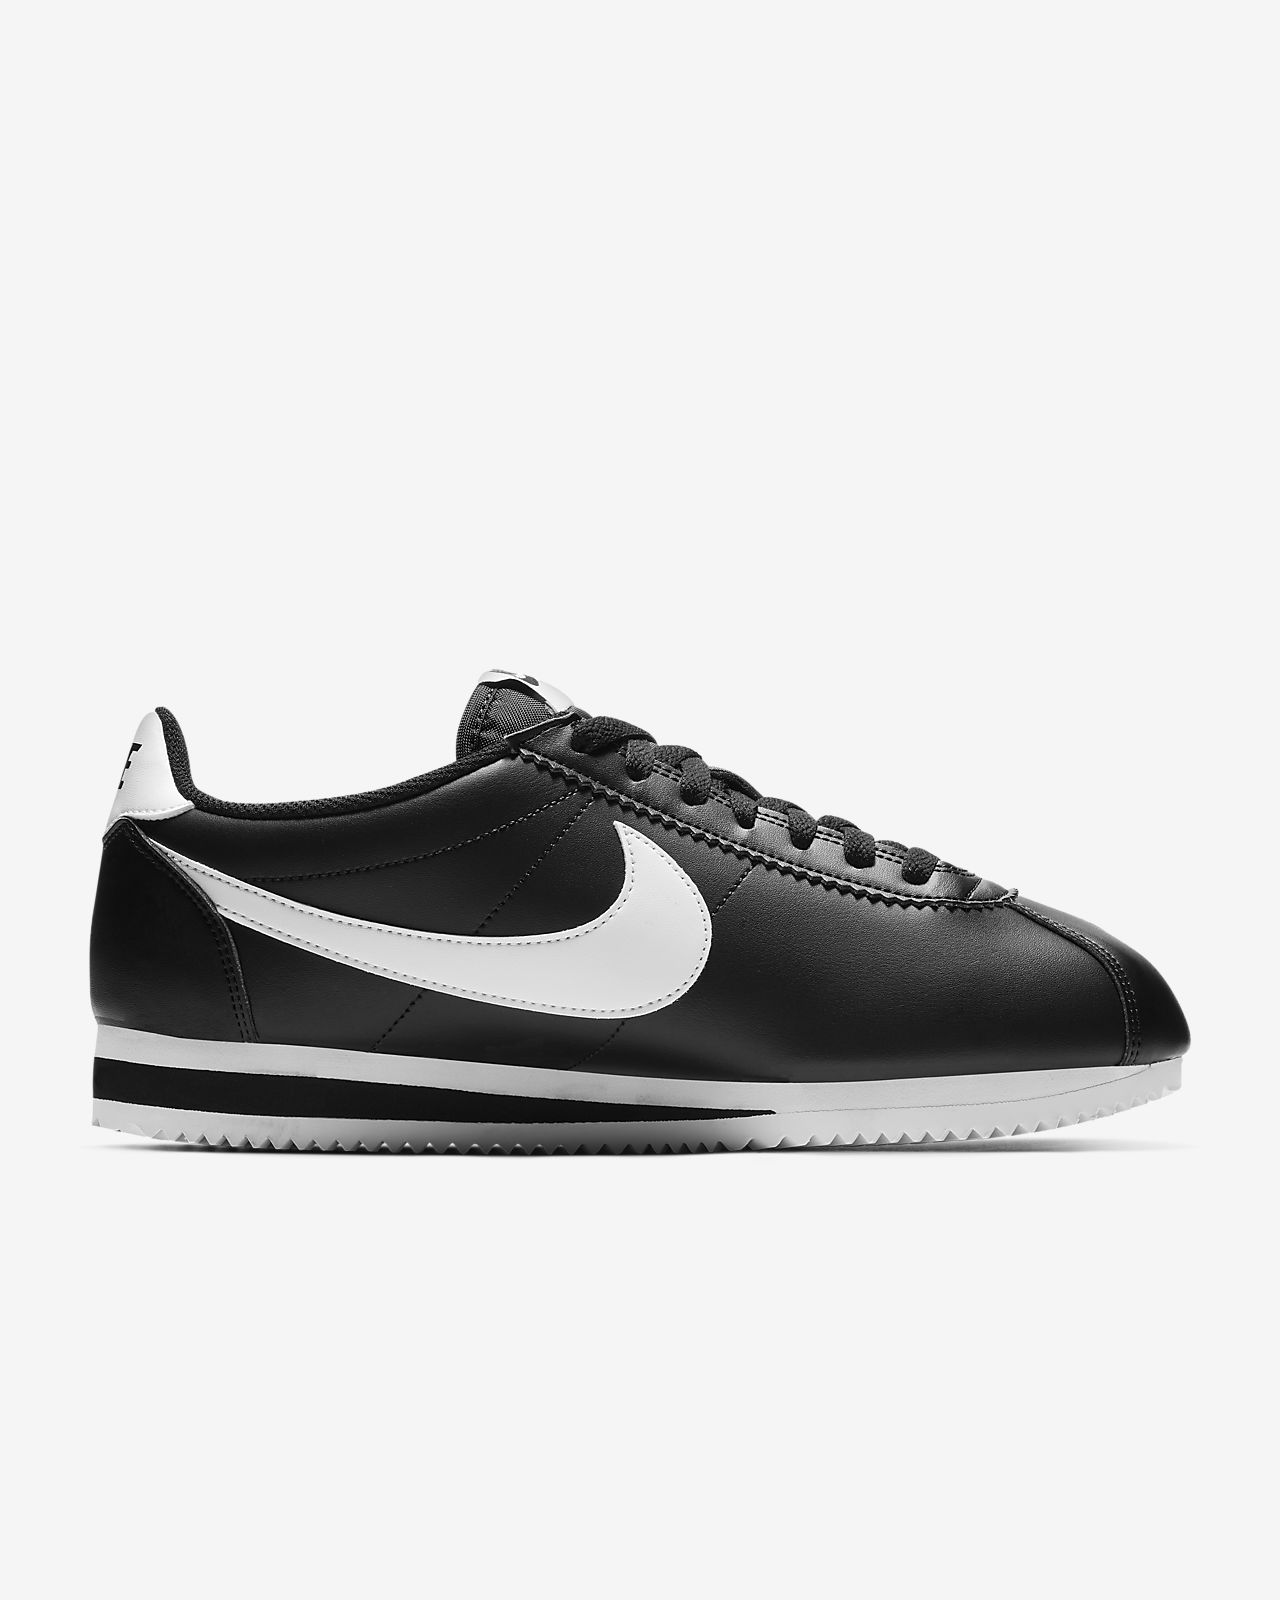 free shipping 53e8b 80ef3 ... Chaussure Nike Classic Cortez pour Femme